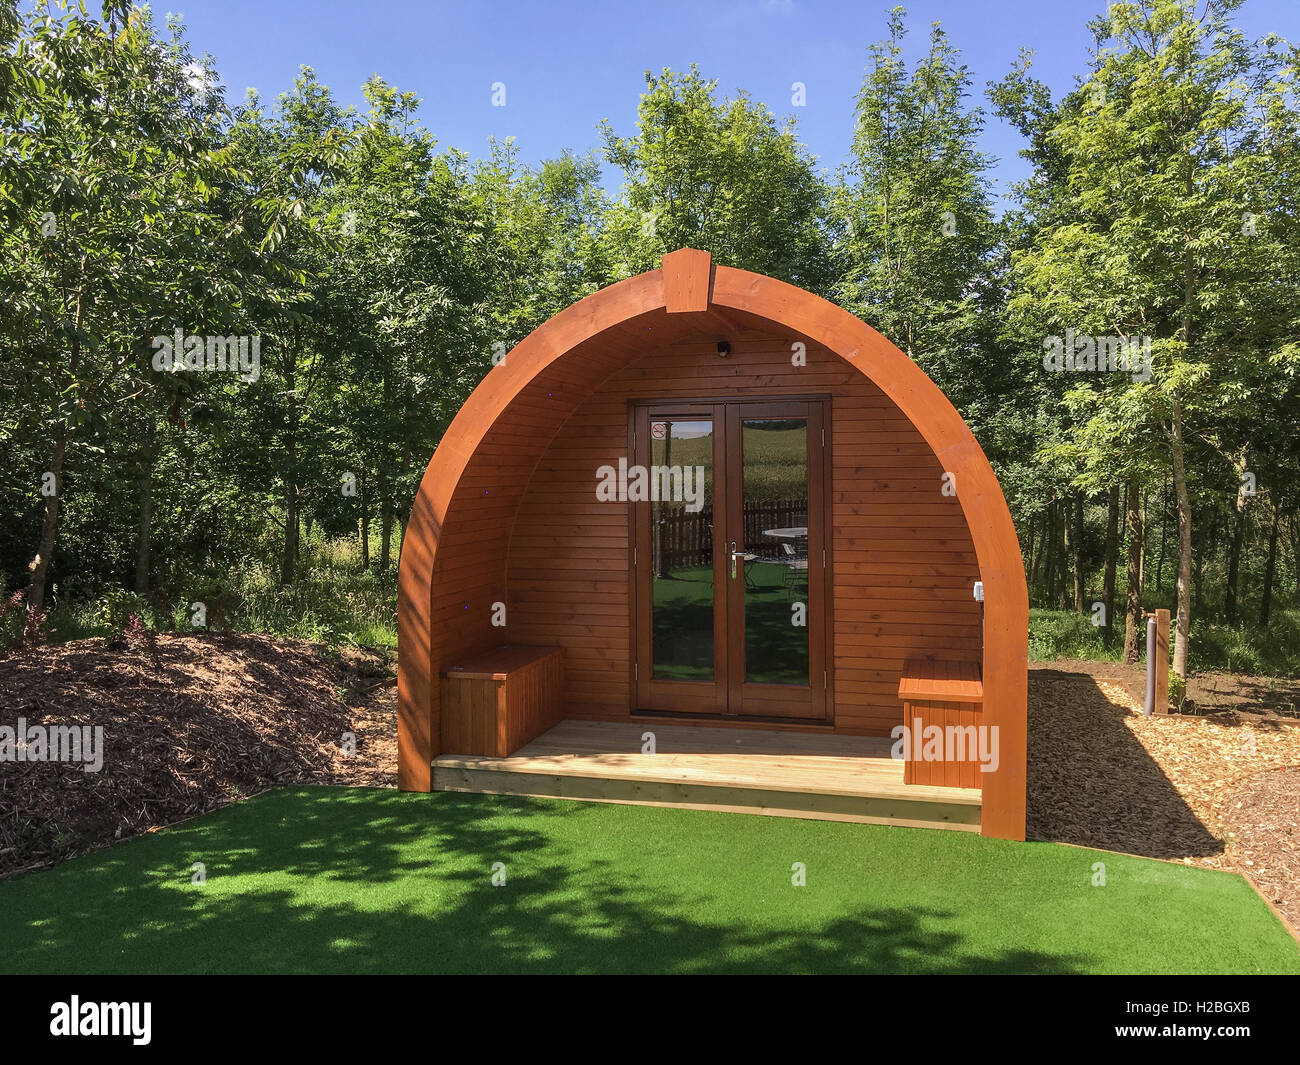 A luxury wooden glamping pod - Stock Image